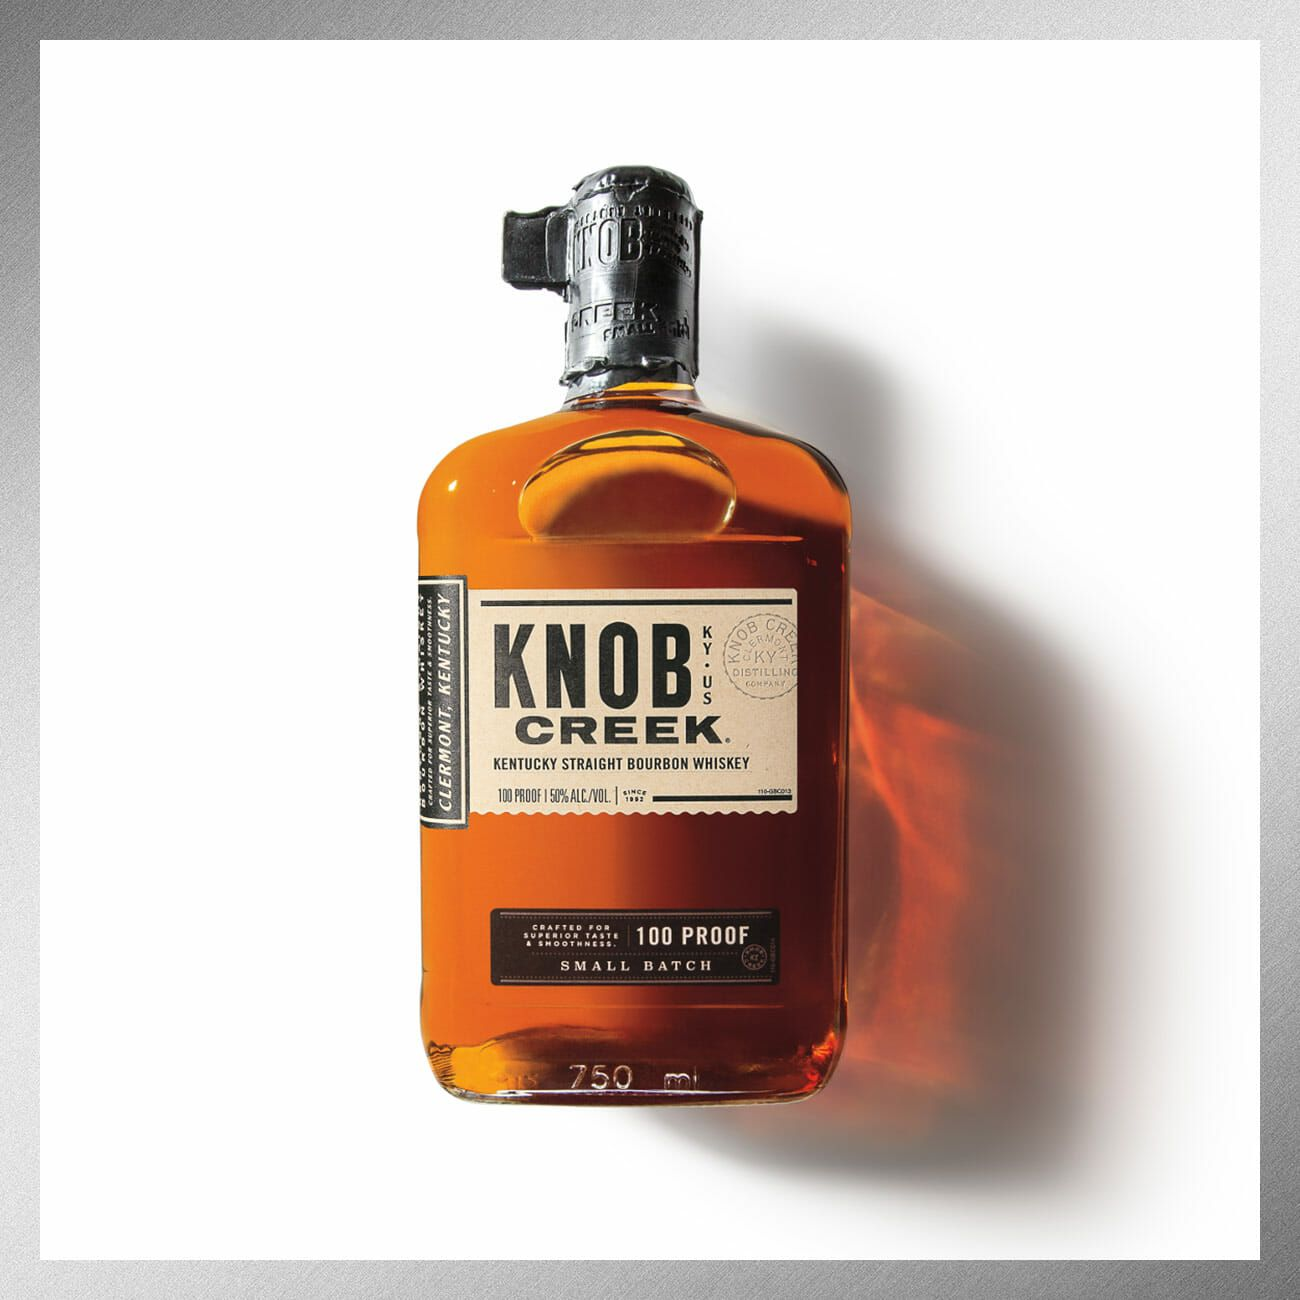 The 20 Best Bottles of Whiskey to Gift